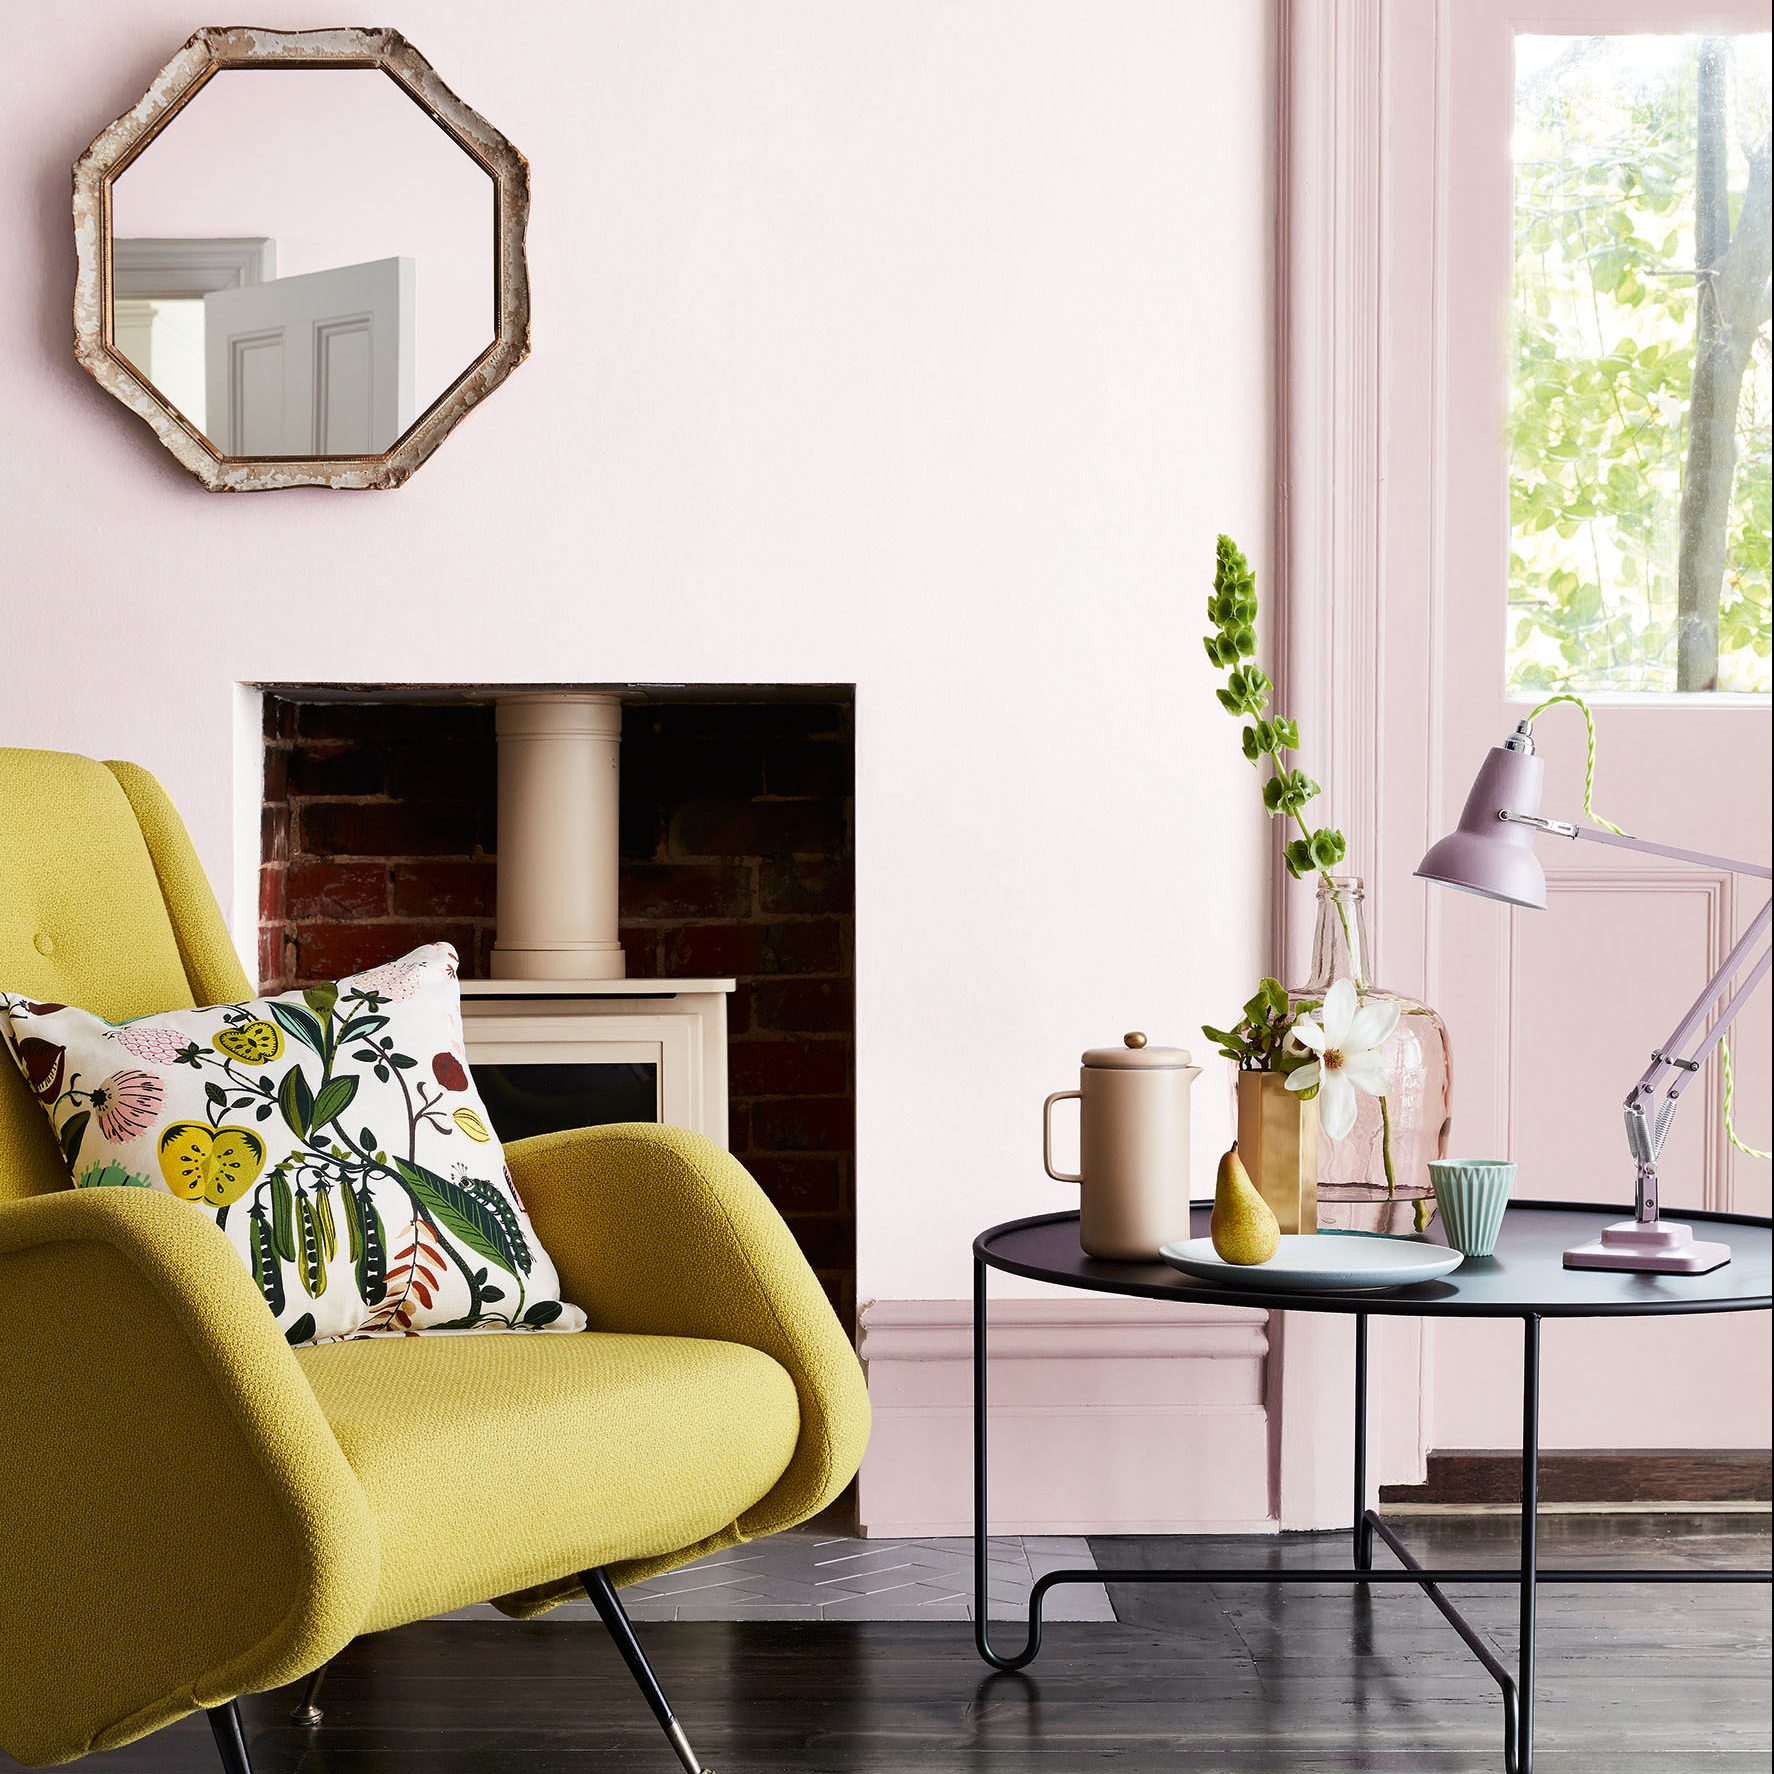 Dorchester Pink Paint by Little Greene